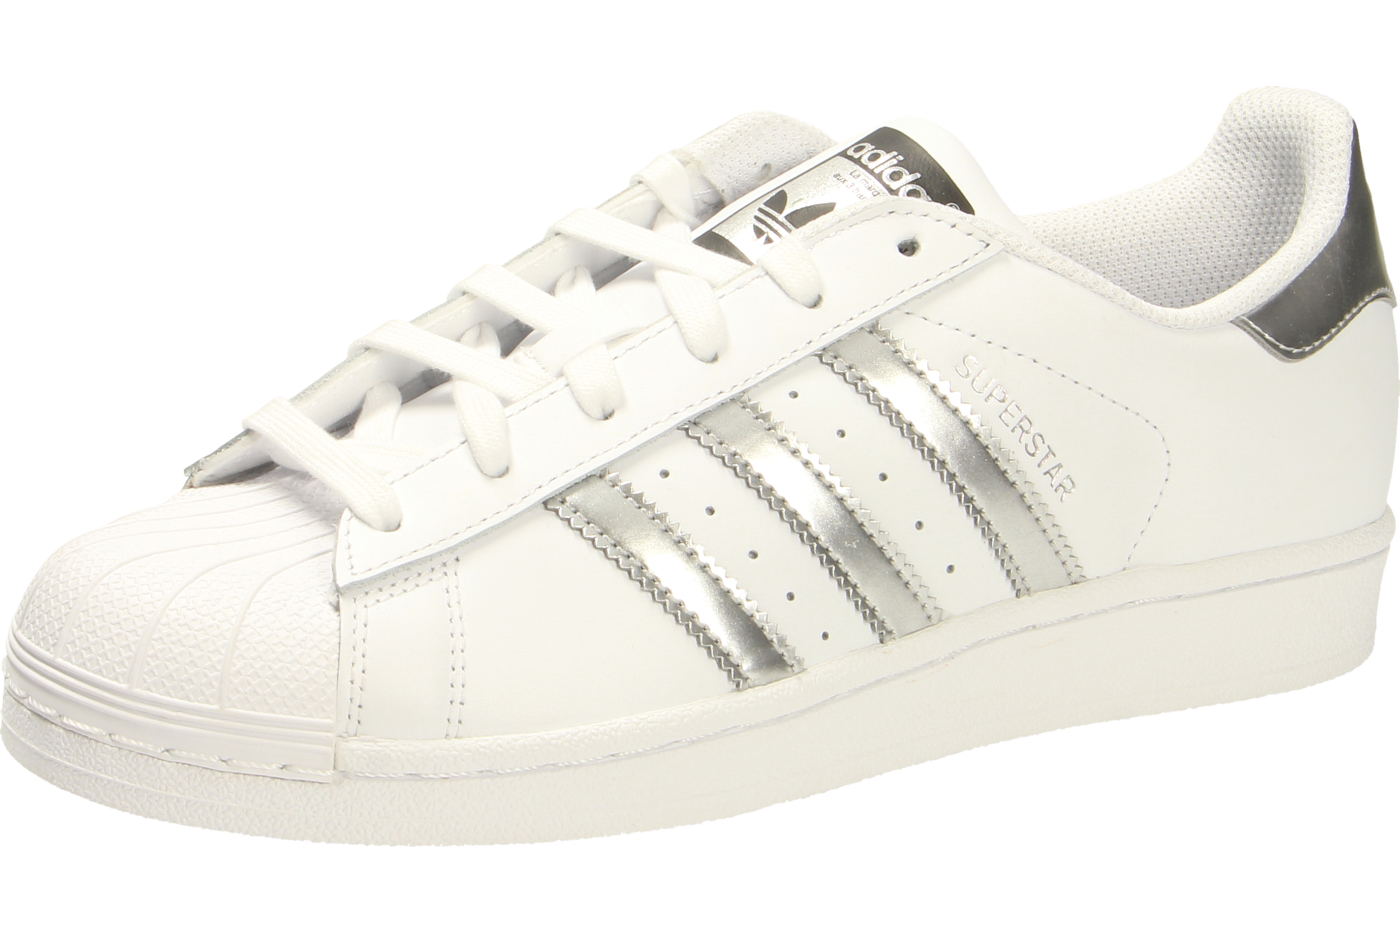 AdidasOriginals SUPERSTAR Lifestyleschuh Lifestyleschuh AQ3091 4.5